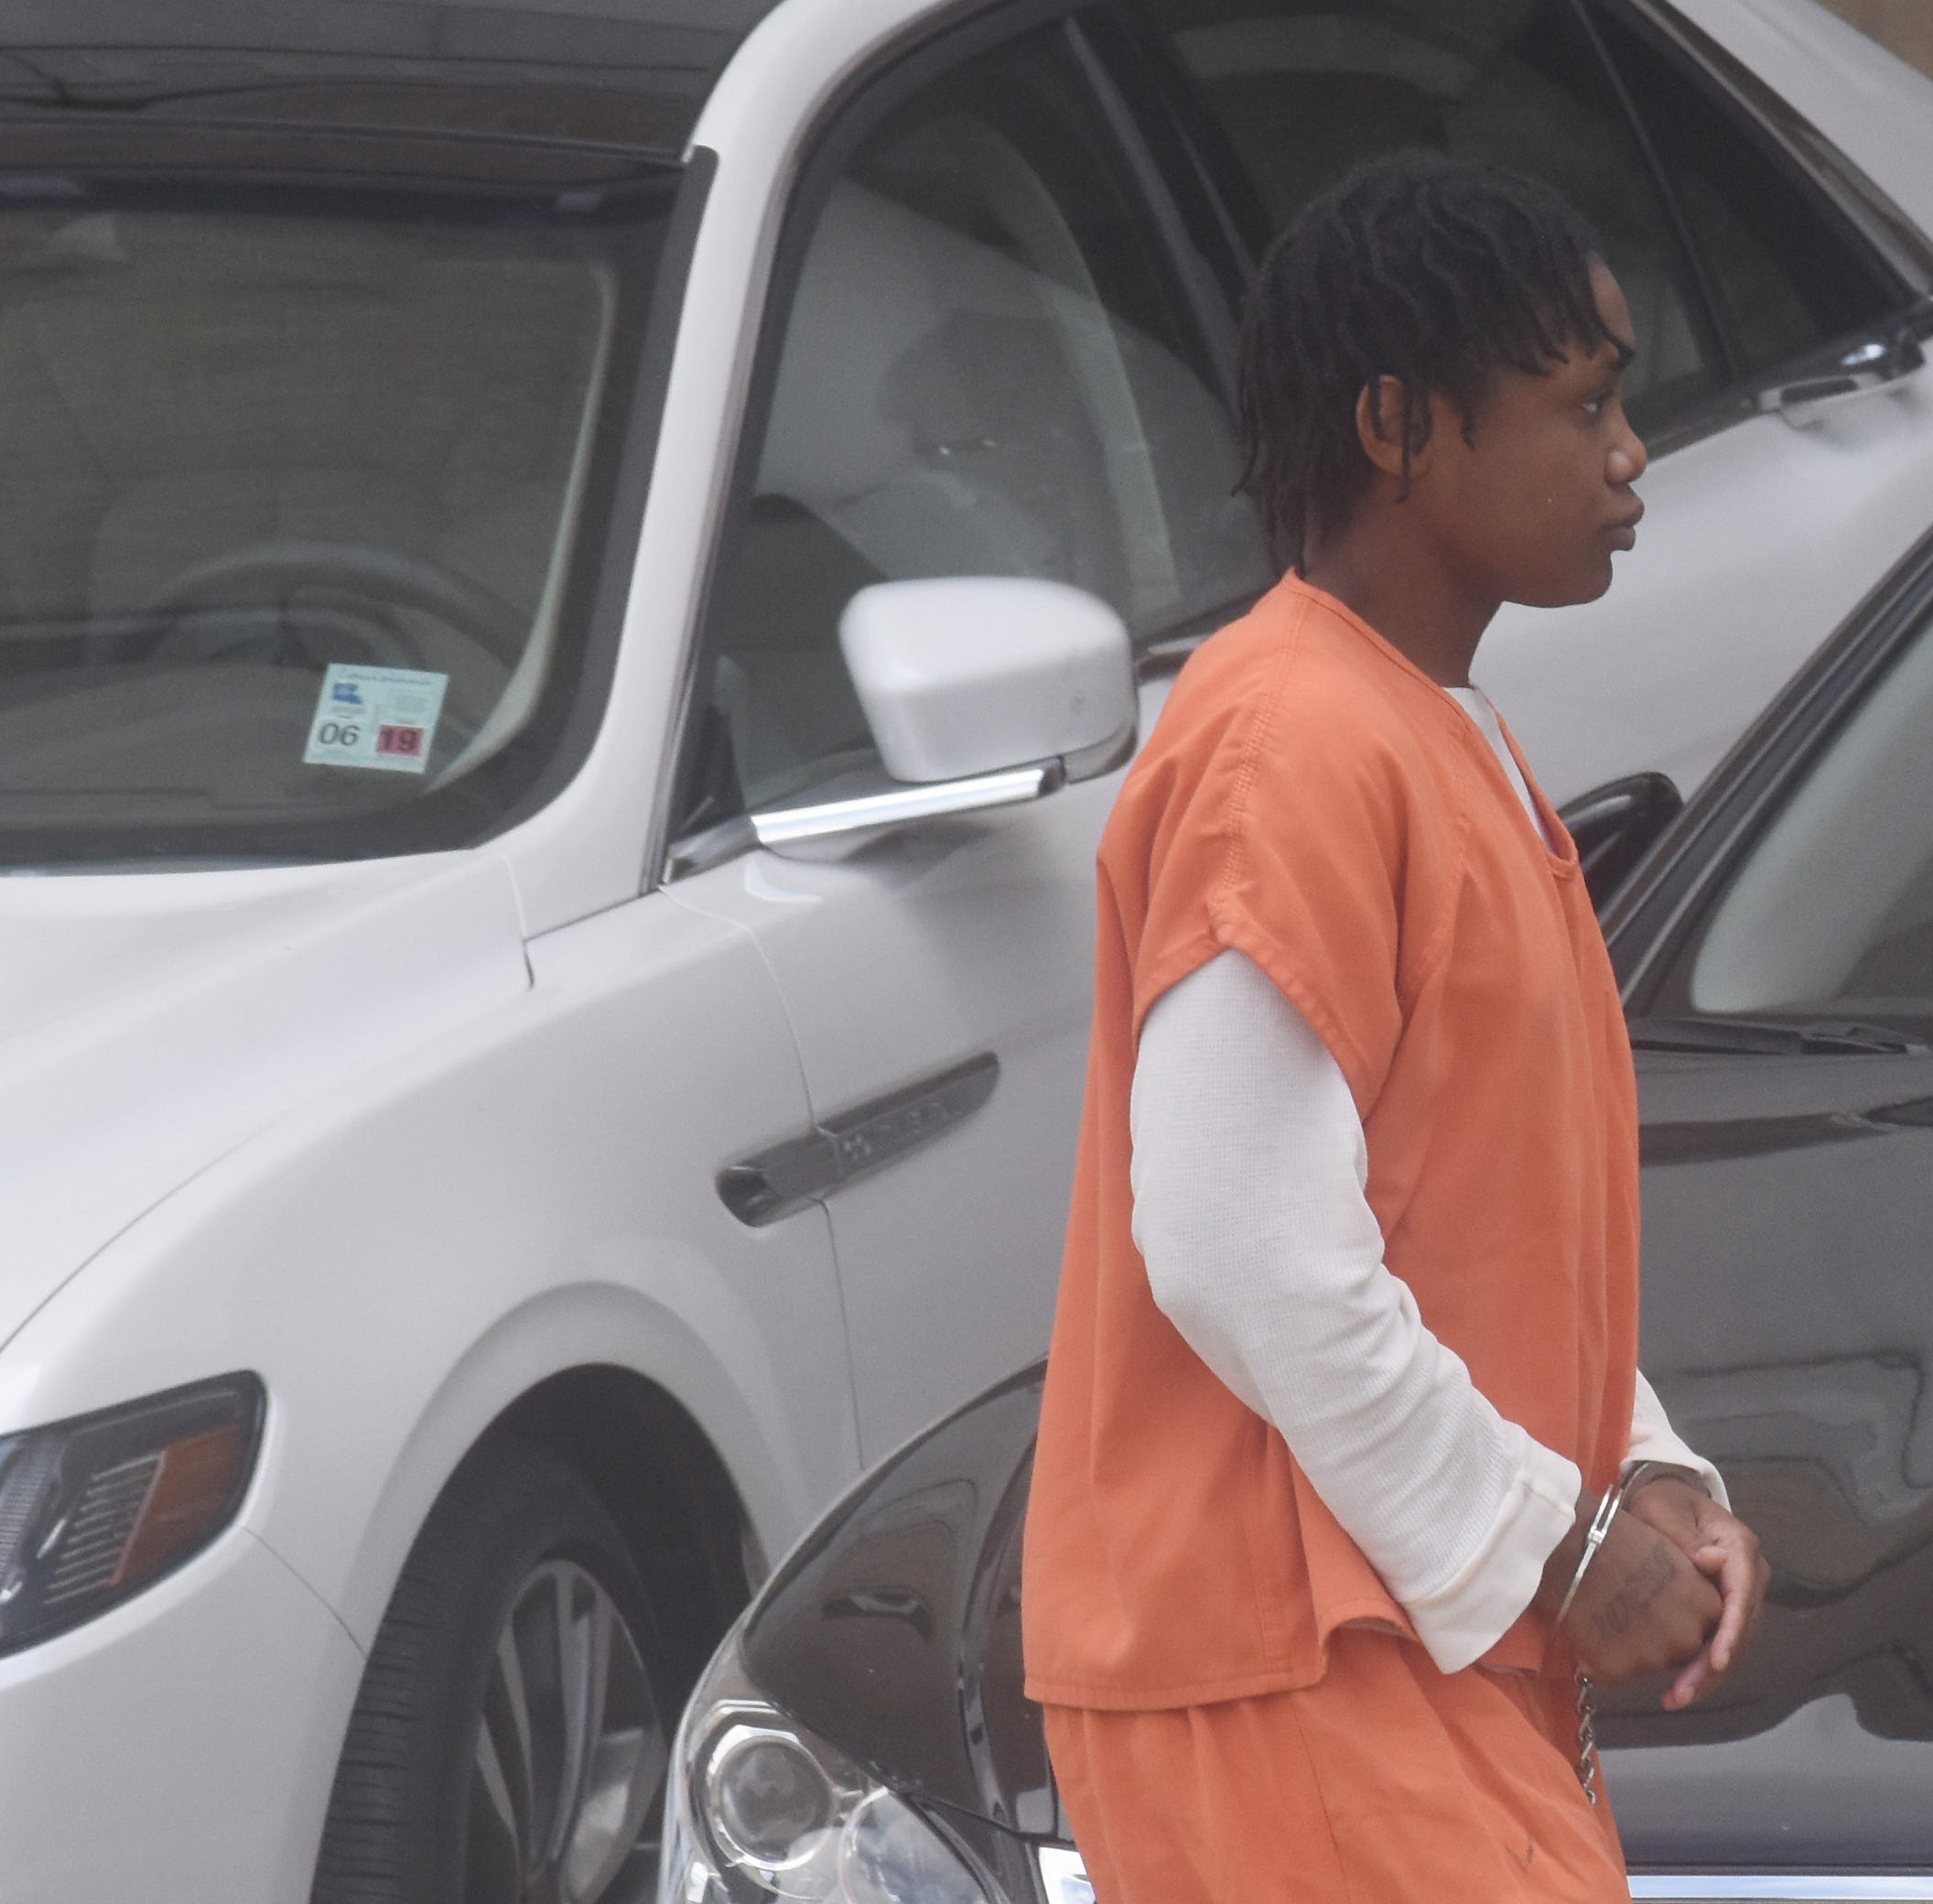 Preliminary exam hearing granted for woman accused in baby's burning death